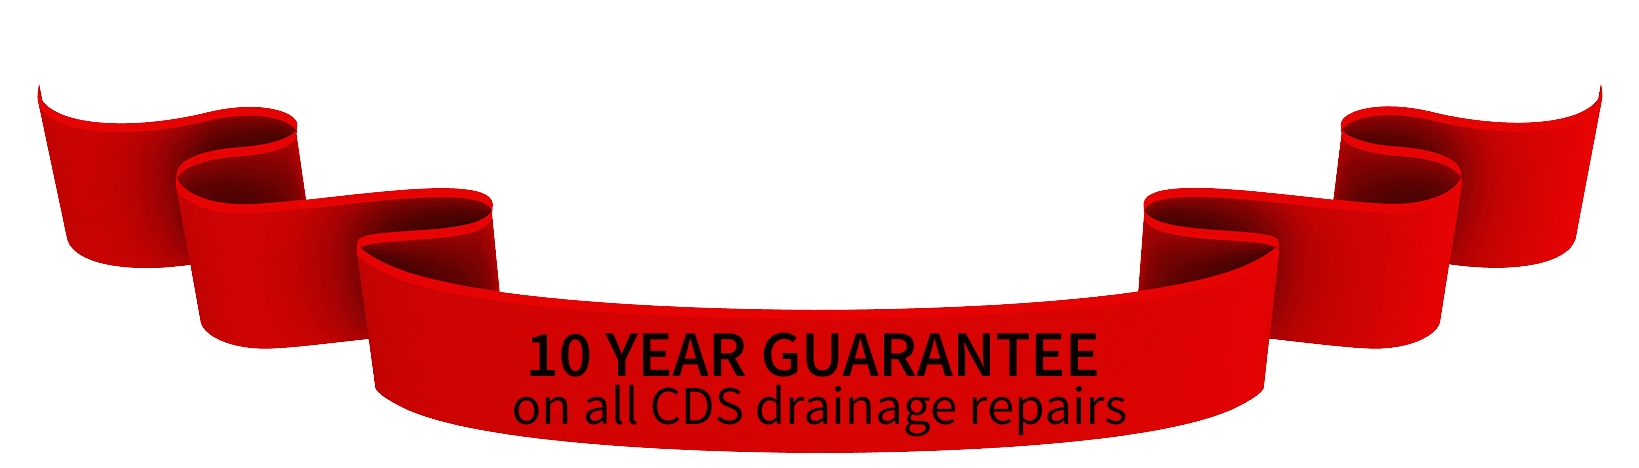 CDS Ltd offer a 10 year guarantee on all drain repairs - call Commercial Drainage Services Essex Ltd